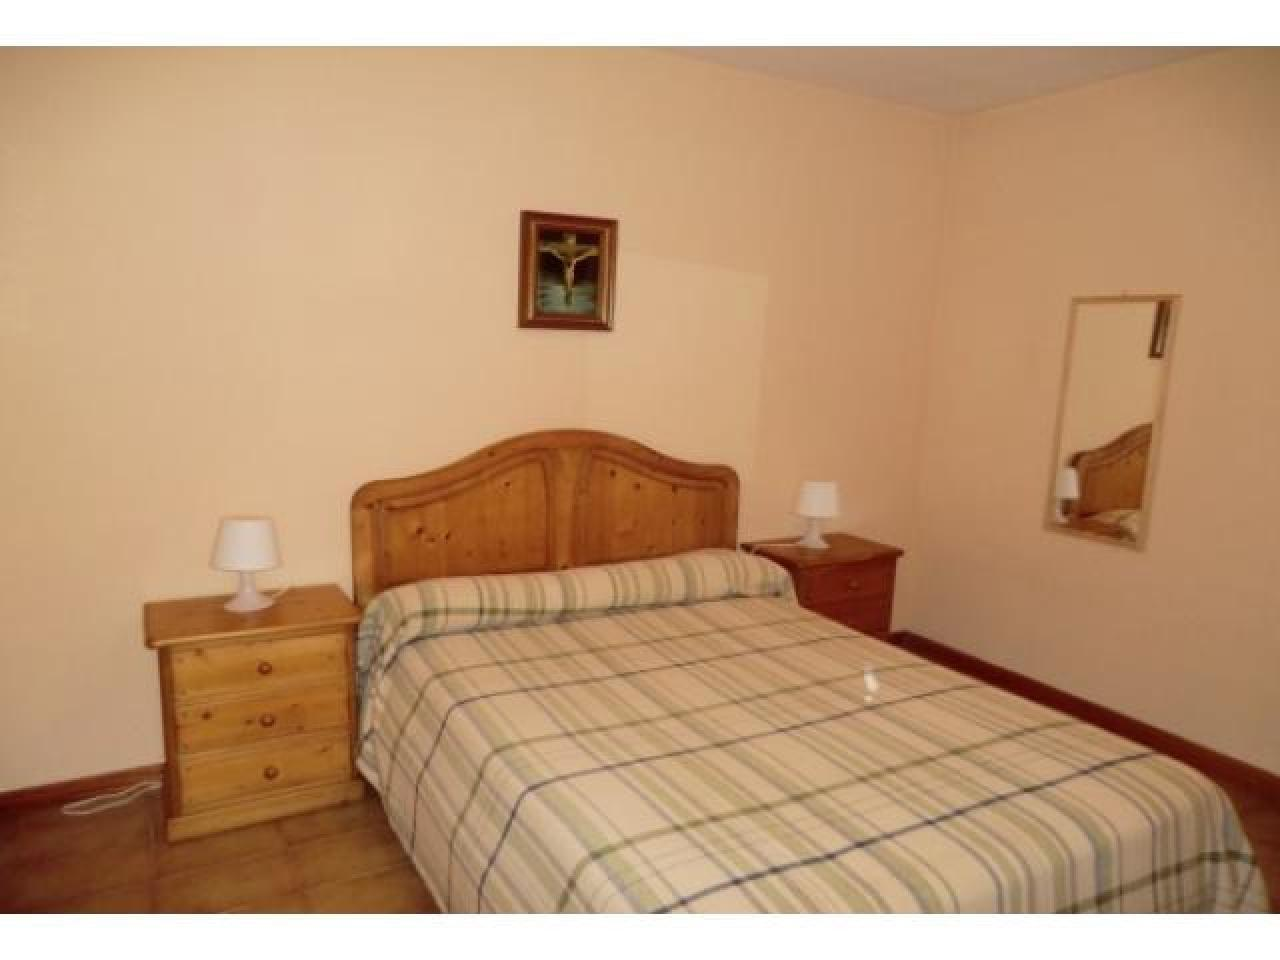 Real estate in Tenerife for sale » #157 - 3